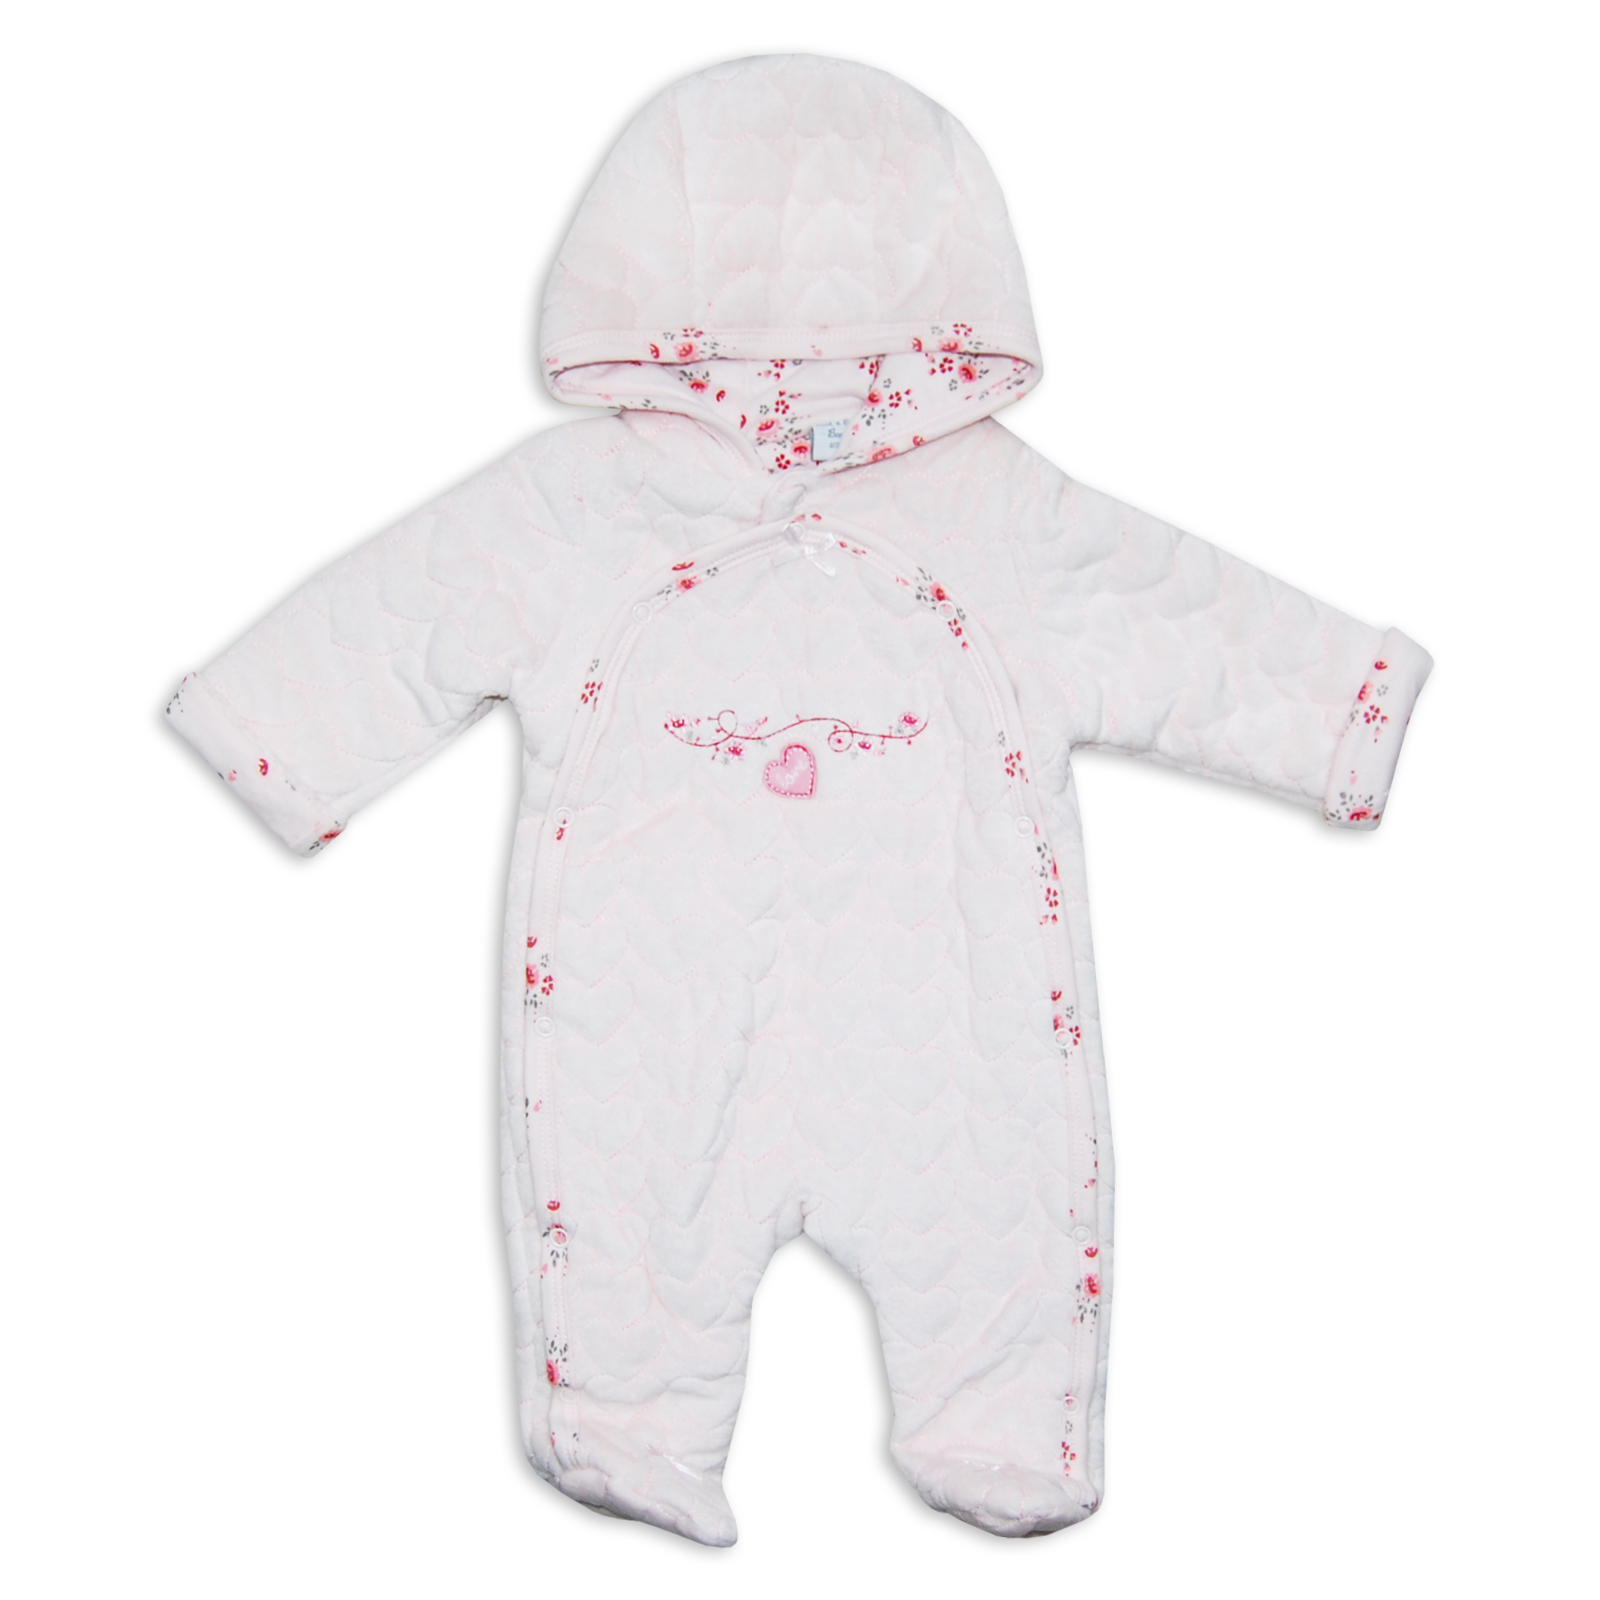 2b1be5935 Toddler Snowsuits